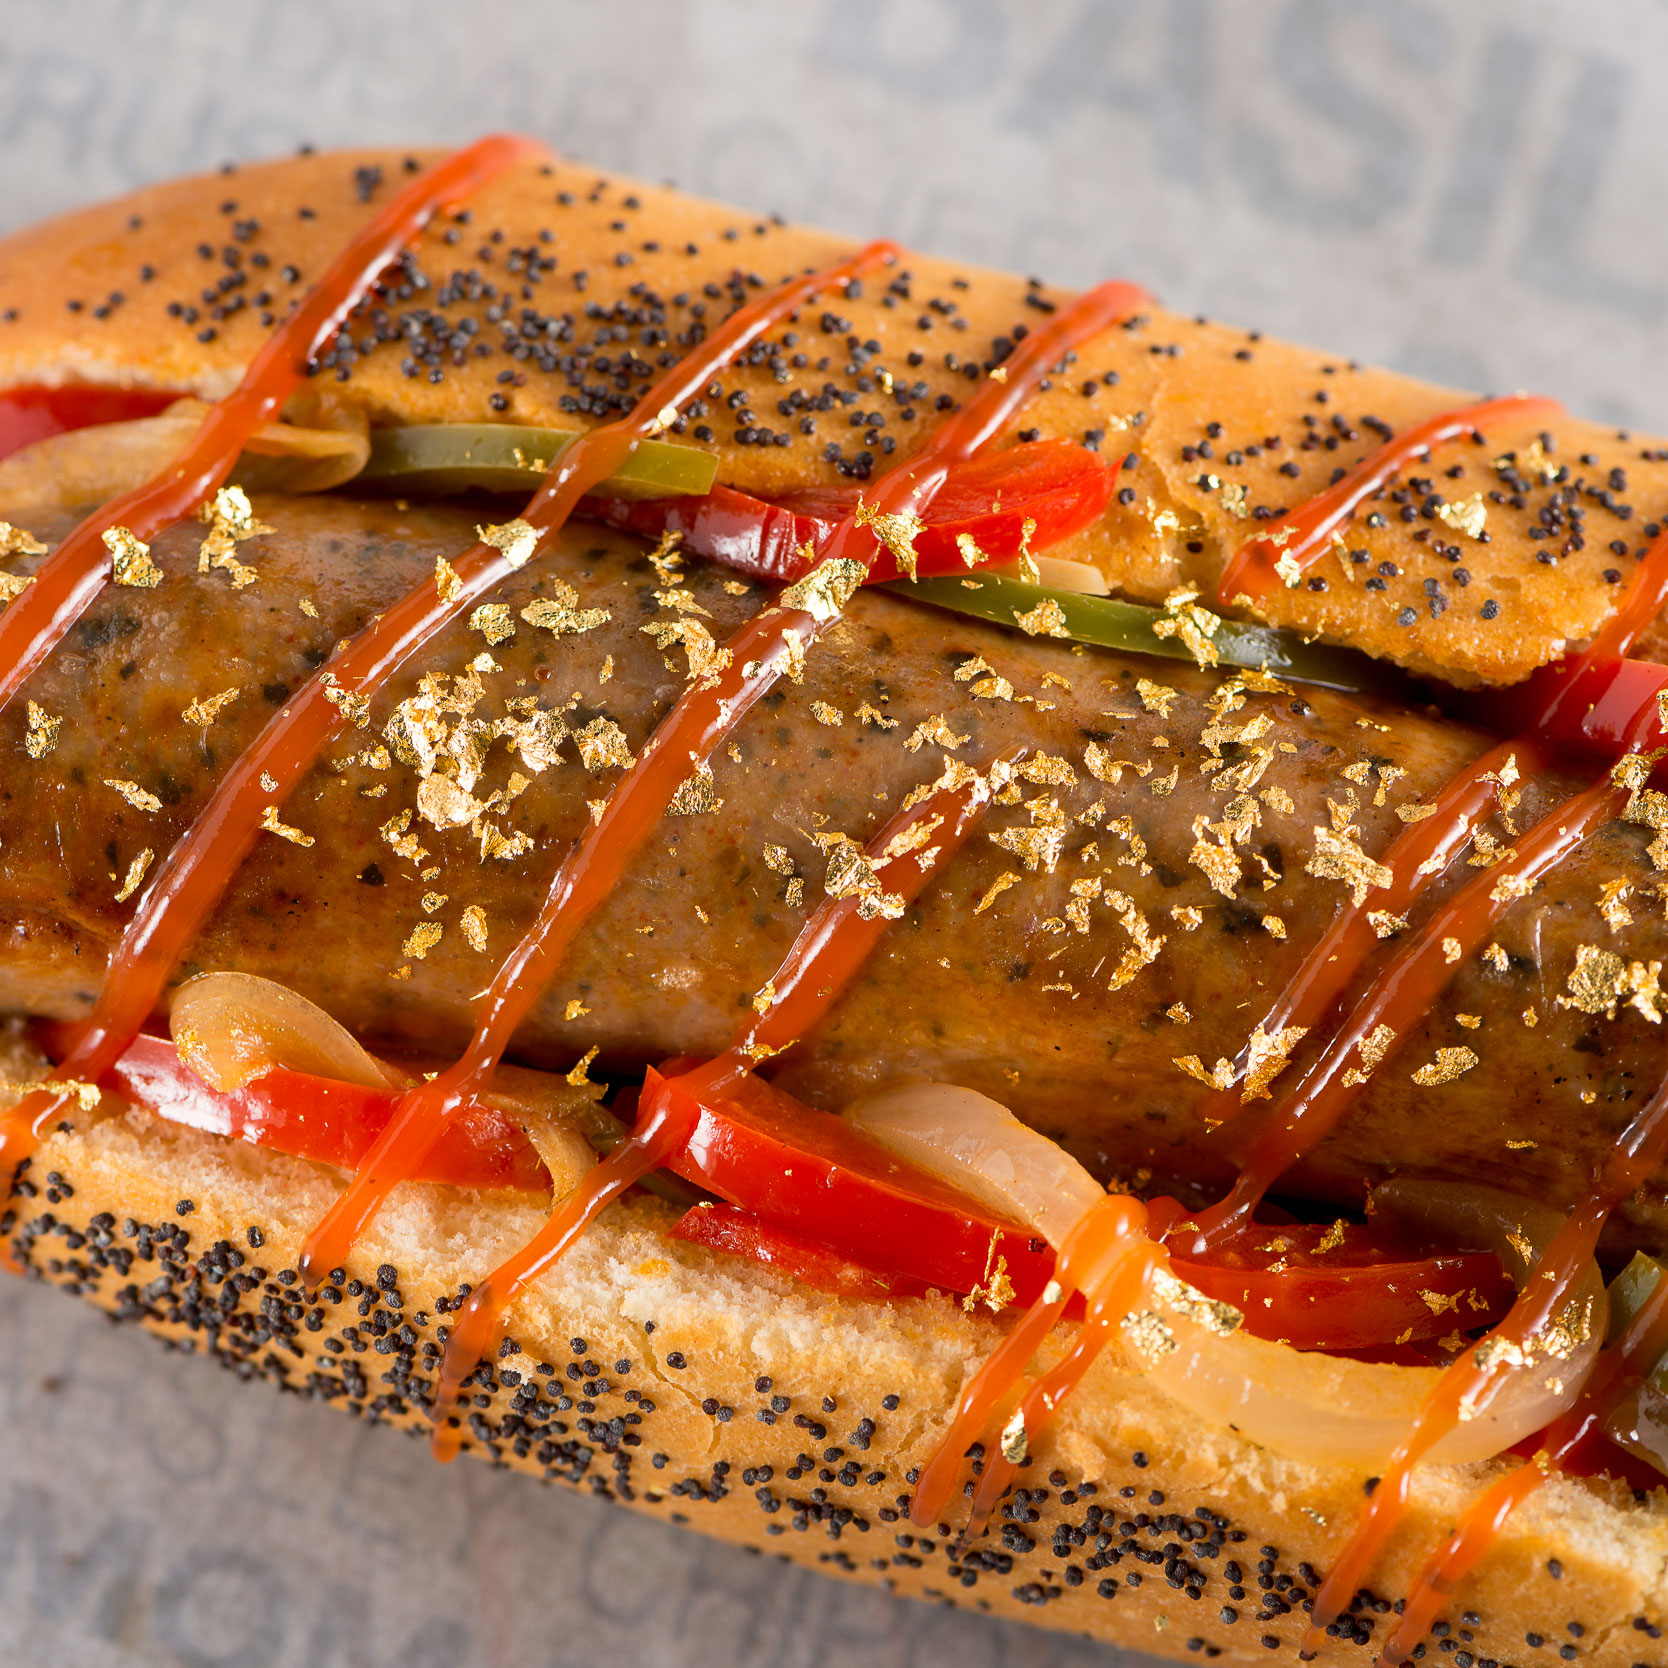 GOLD DUSTED HOT DOG FWX